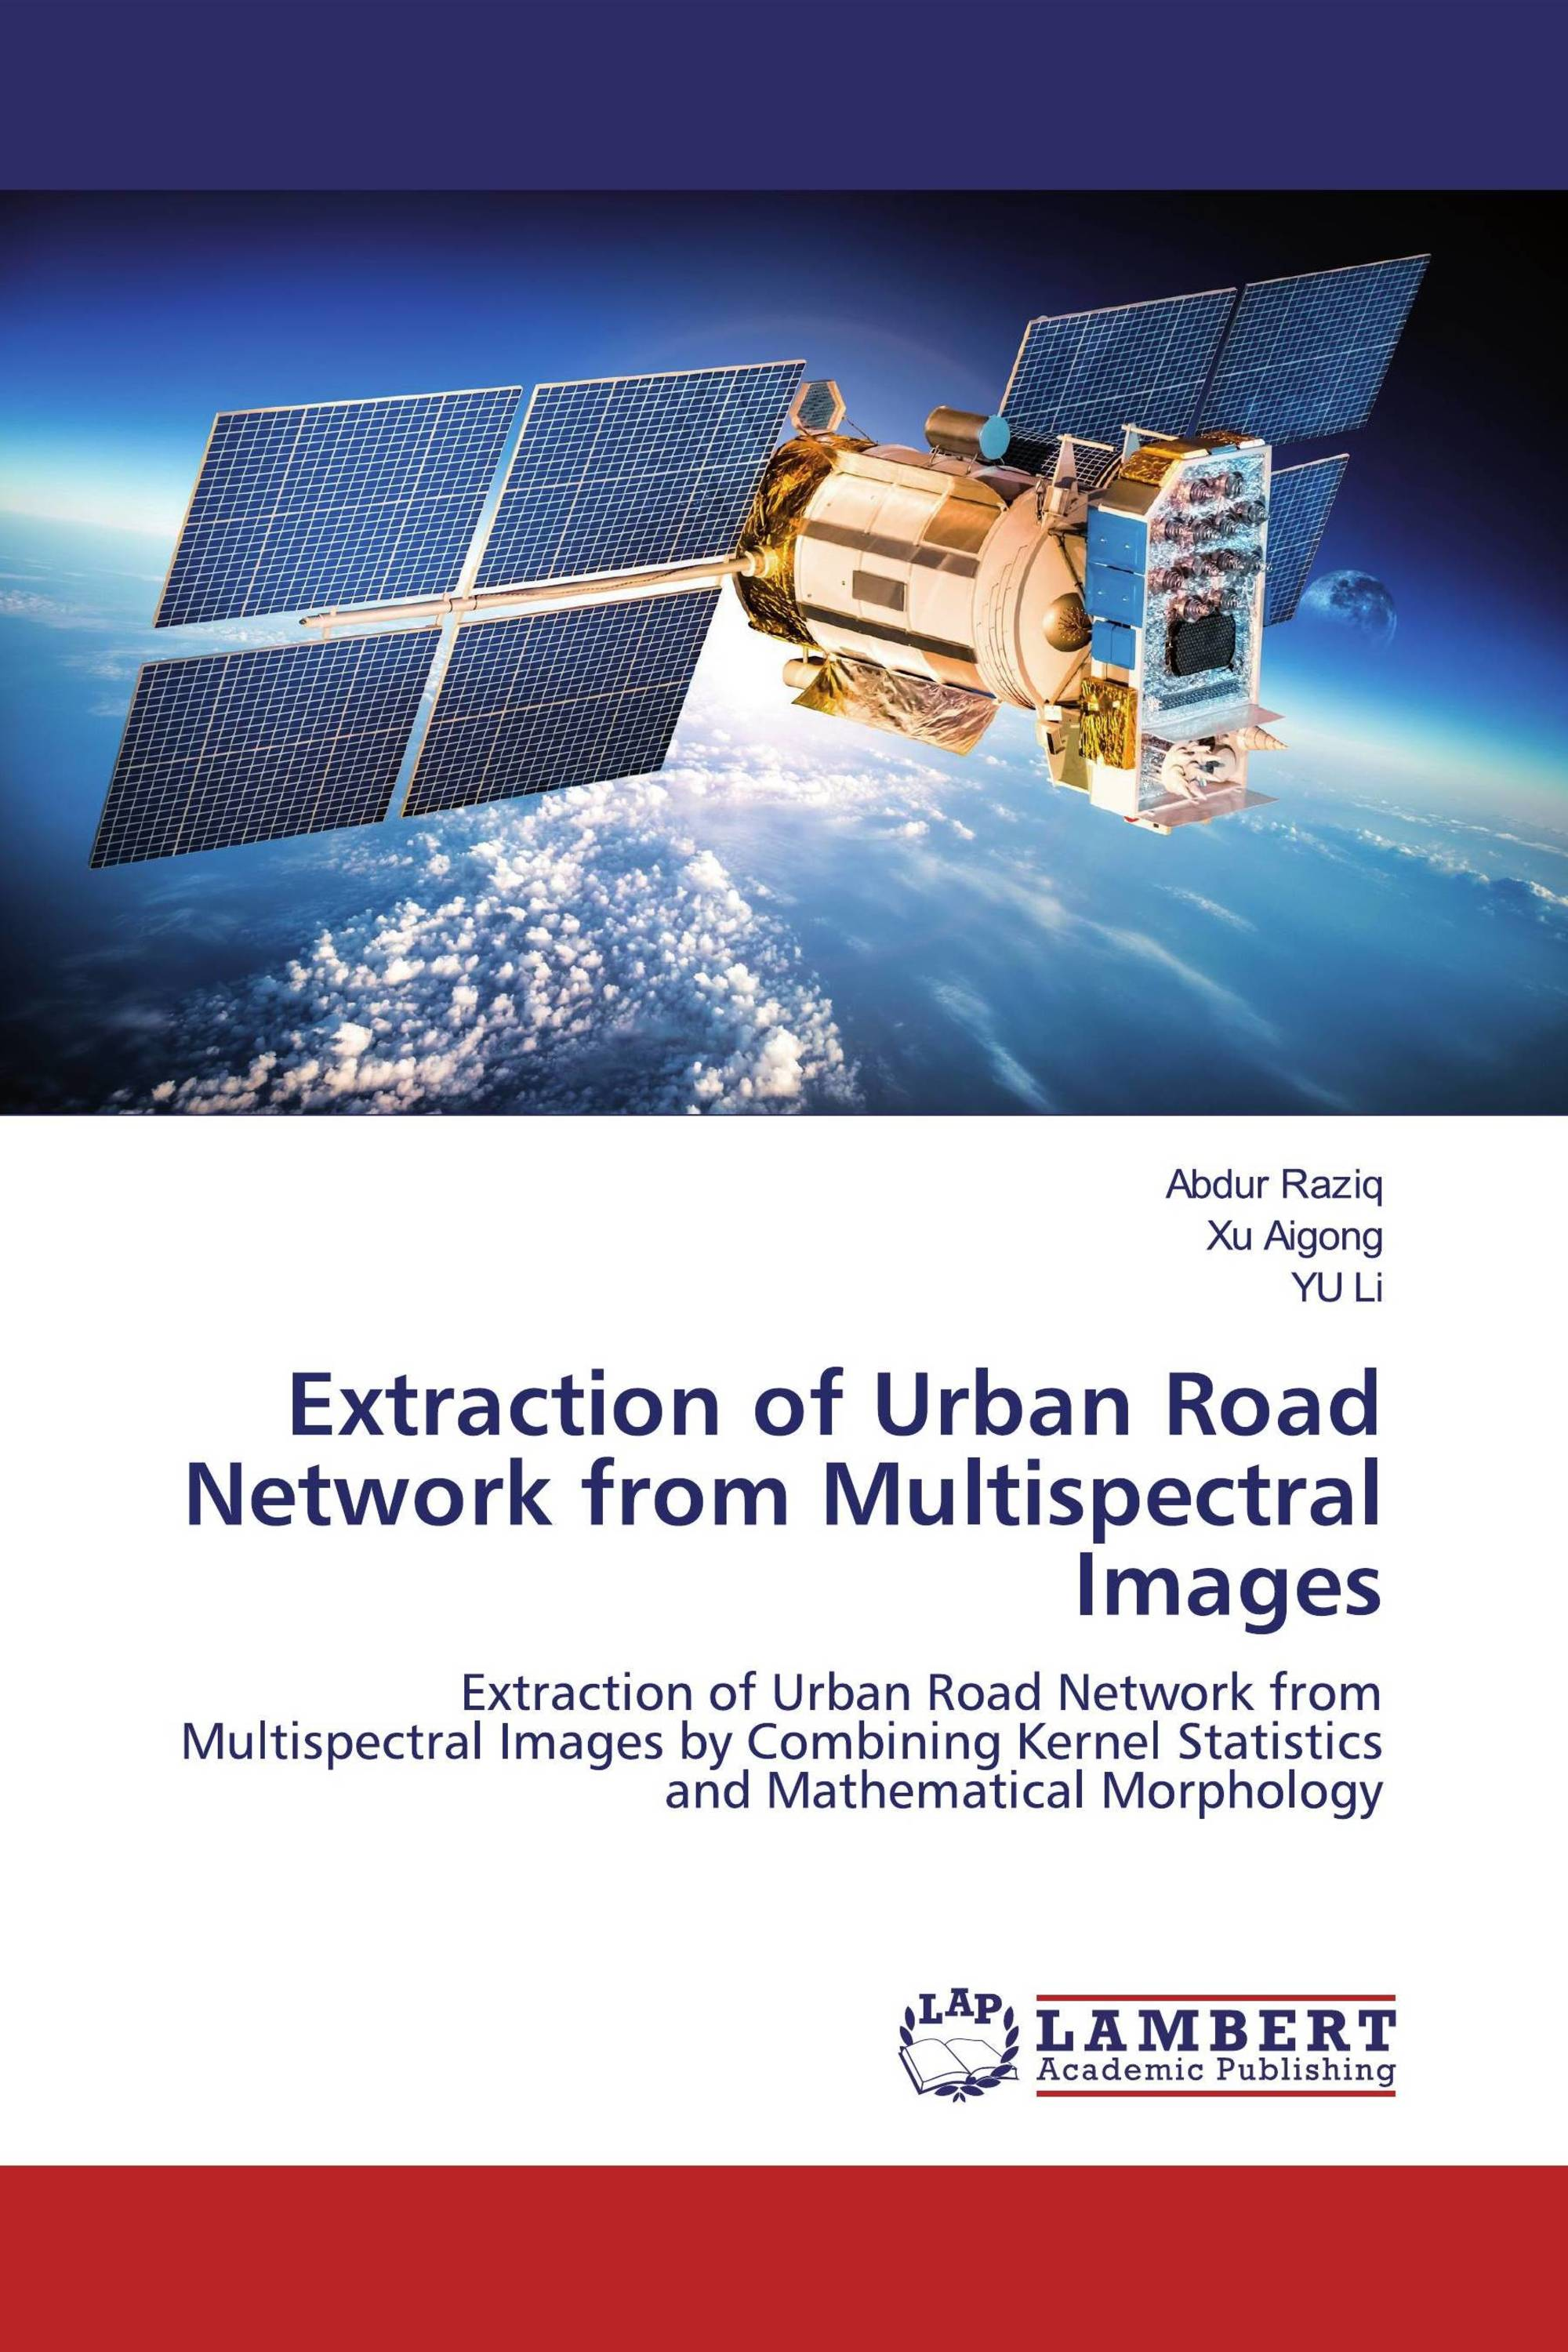 Extraction of Urban Road Network from Multispectral Images